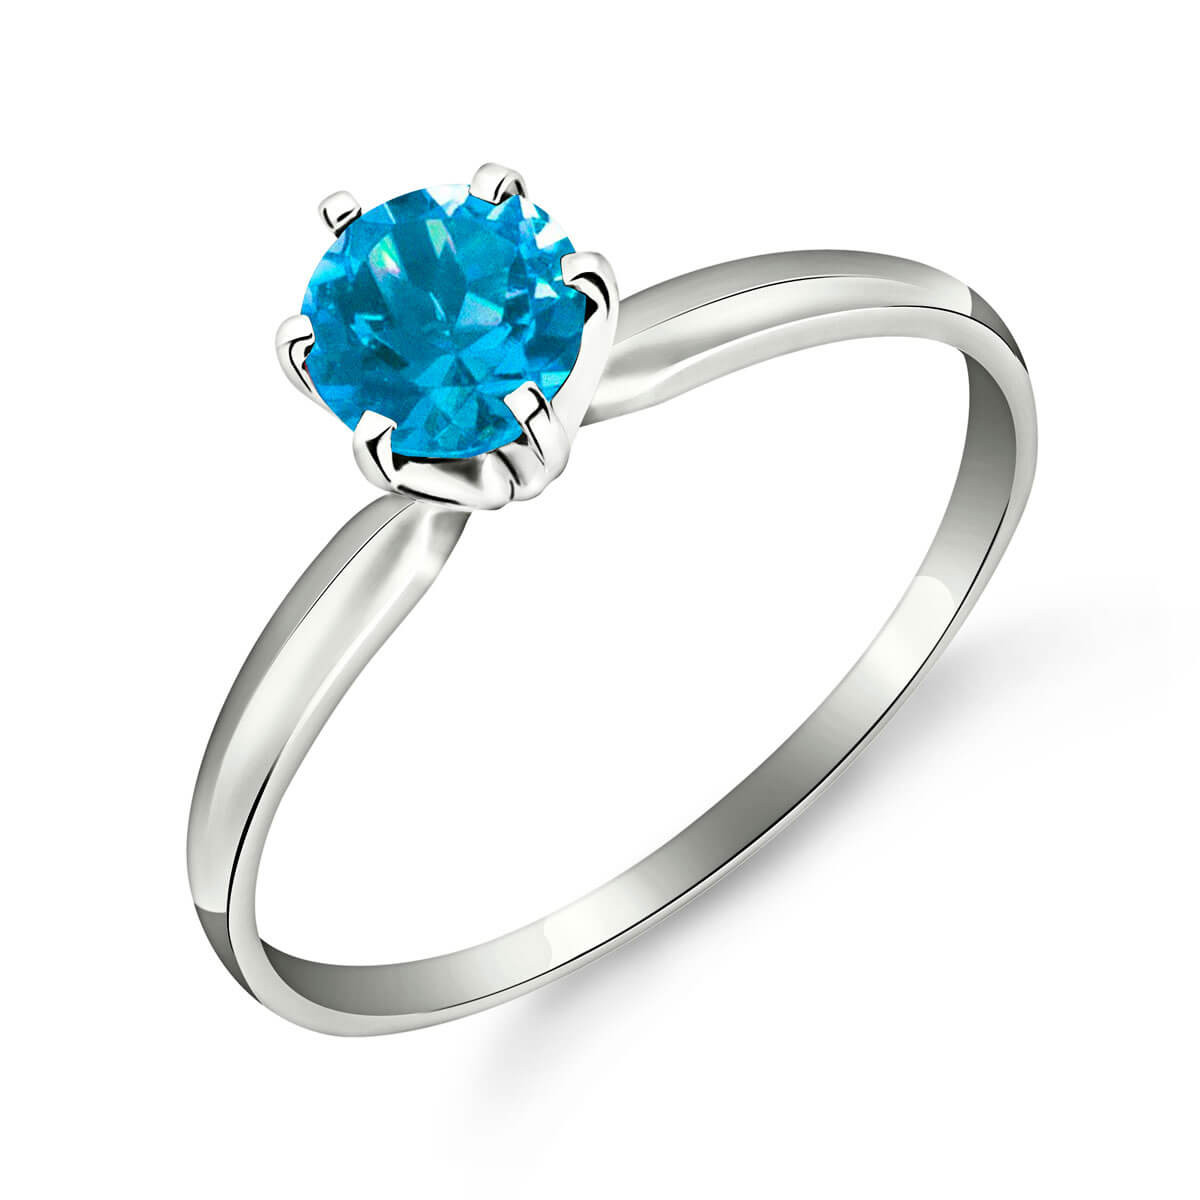 Blue Topaz Crown Solitaire Ring 0.65 ct in 9ct White Gold